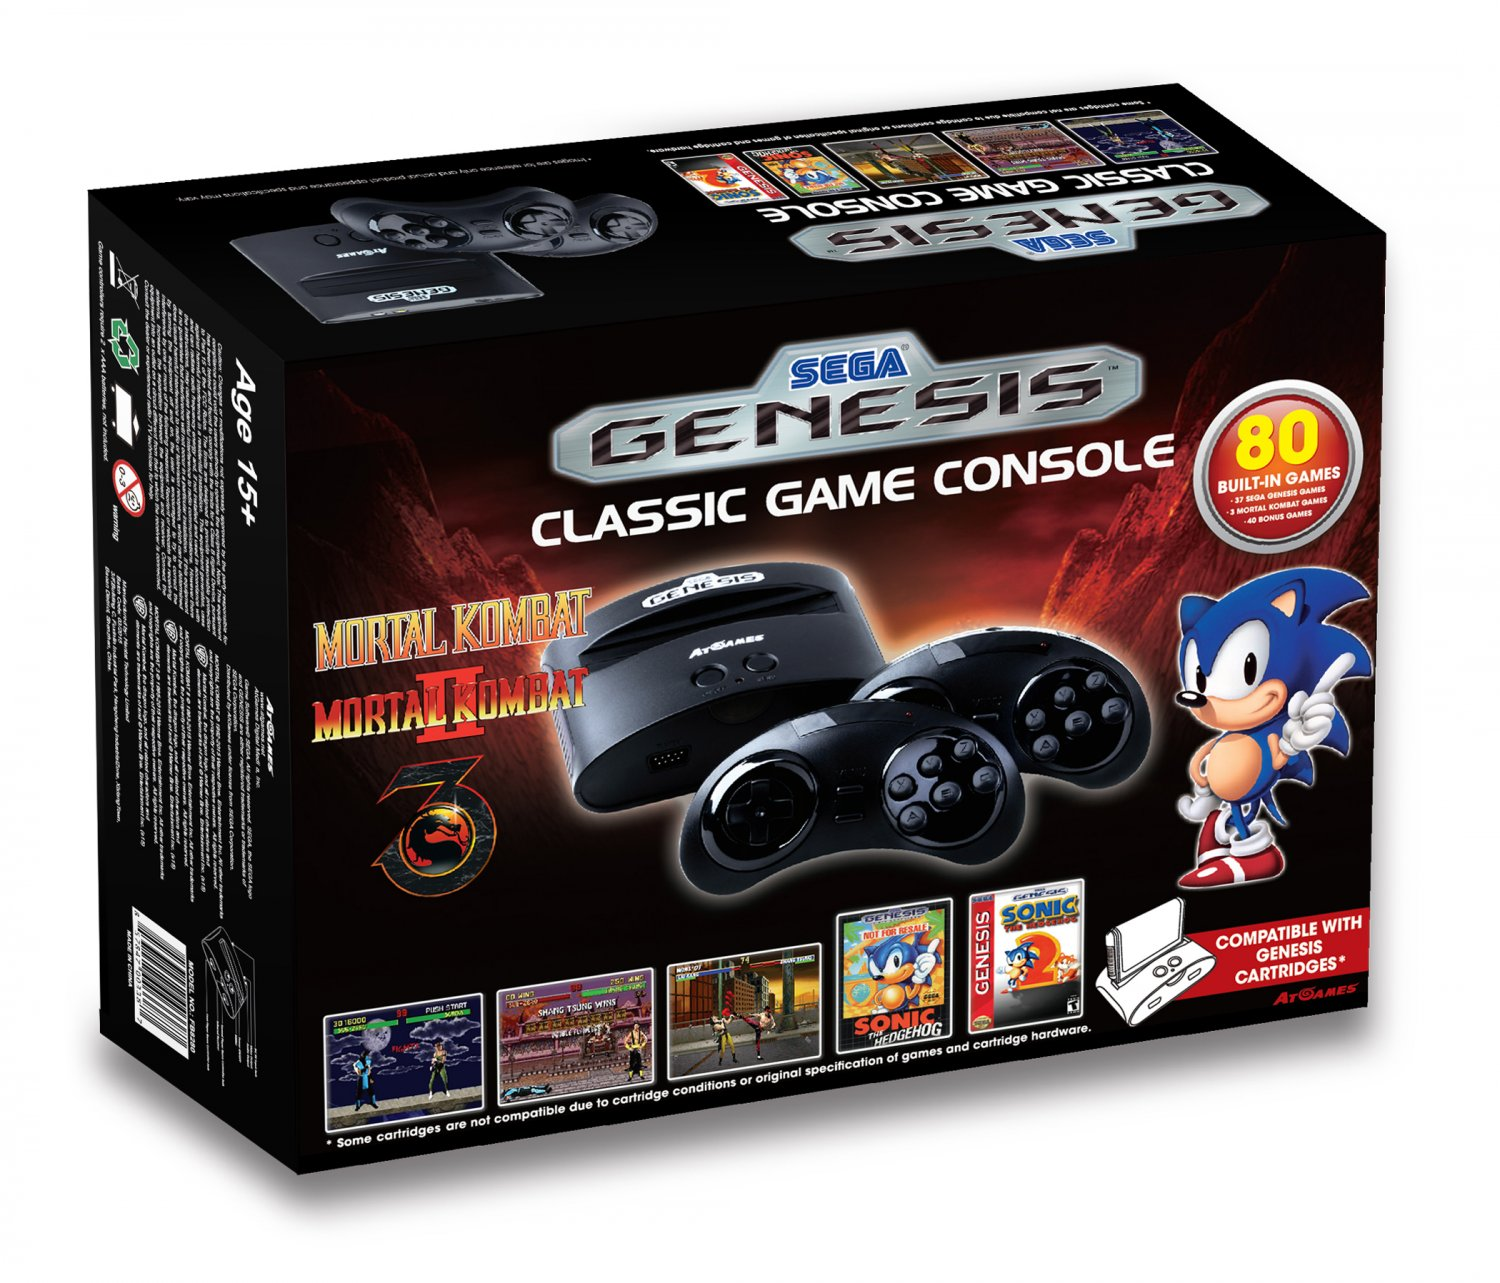 Sega genesis classic game console 2015 the official - Atgames sega genesis classic game console game list ...